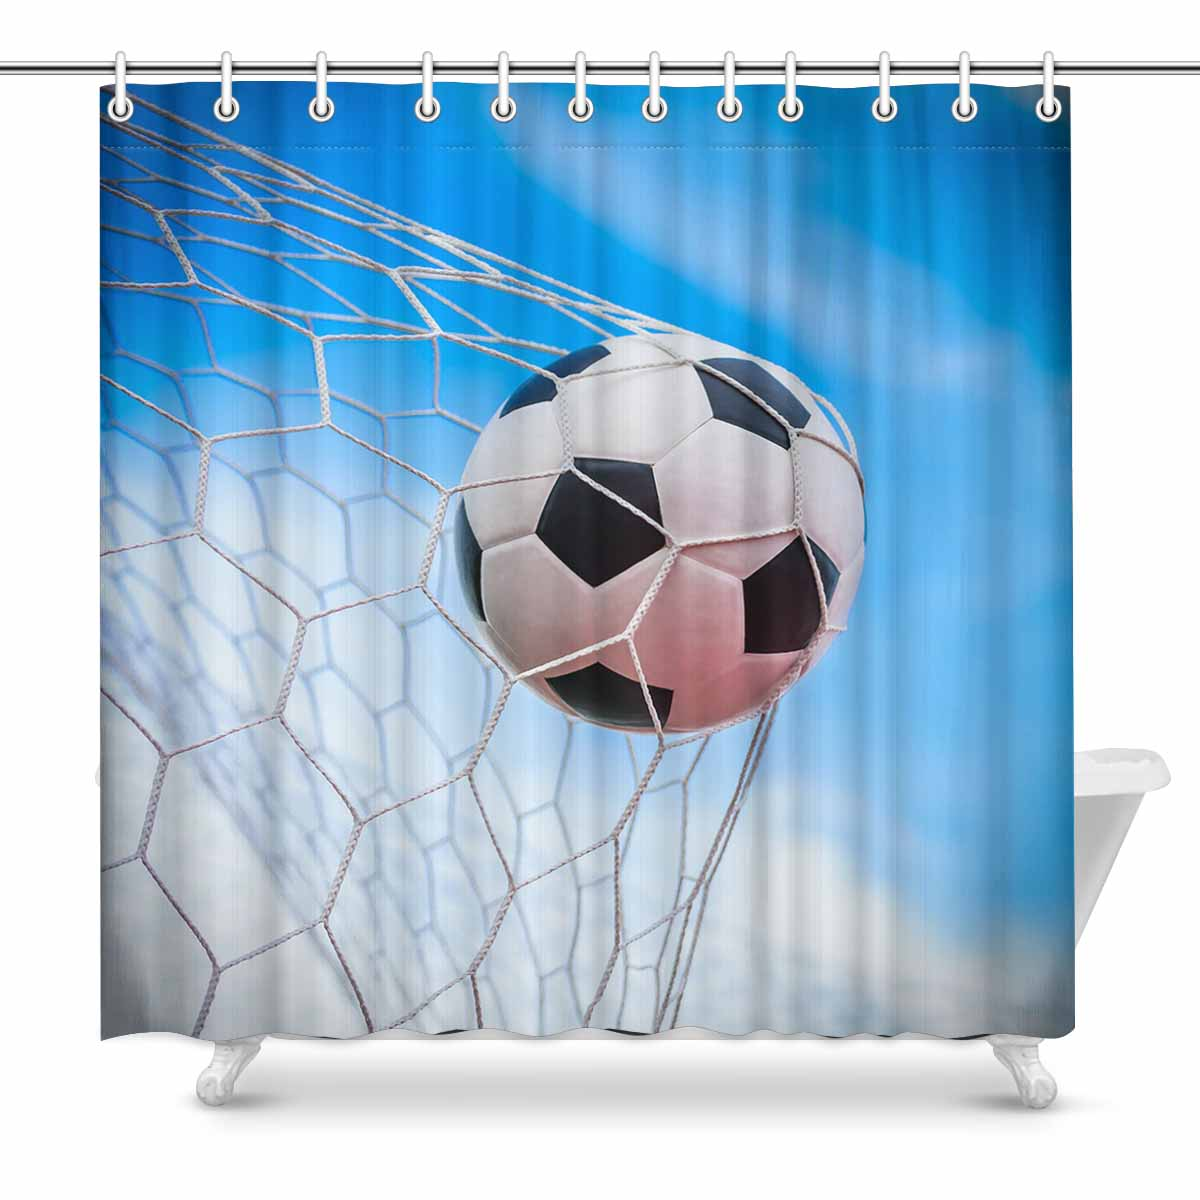 Sport Themed Shower Curtains Print With Soccer Ball In Goal Net